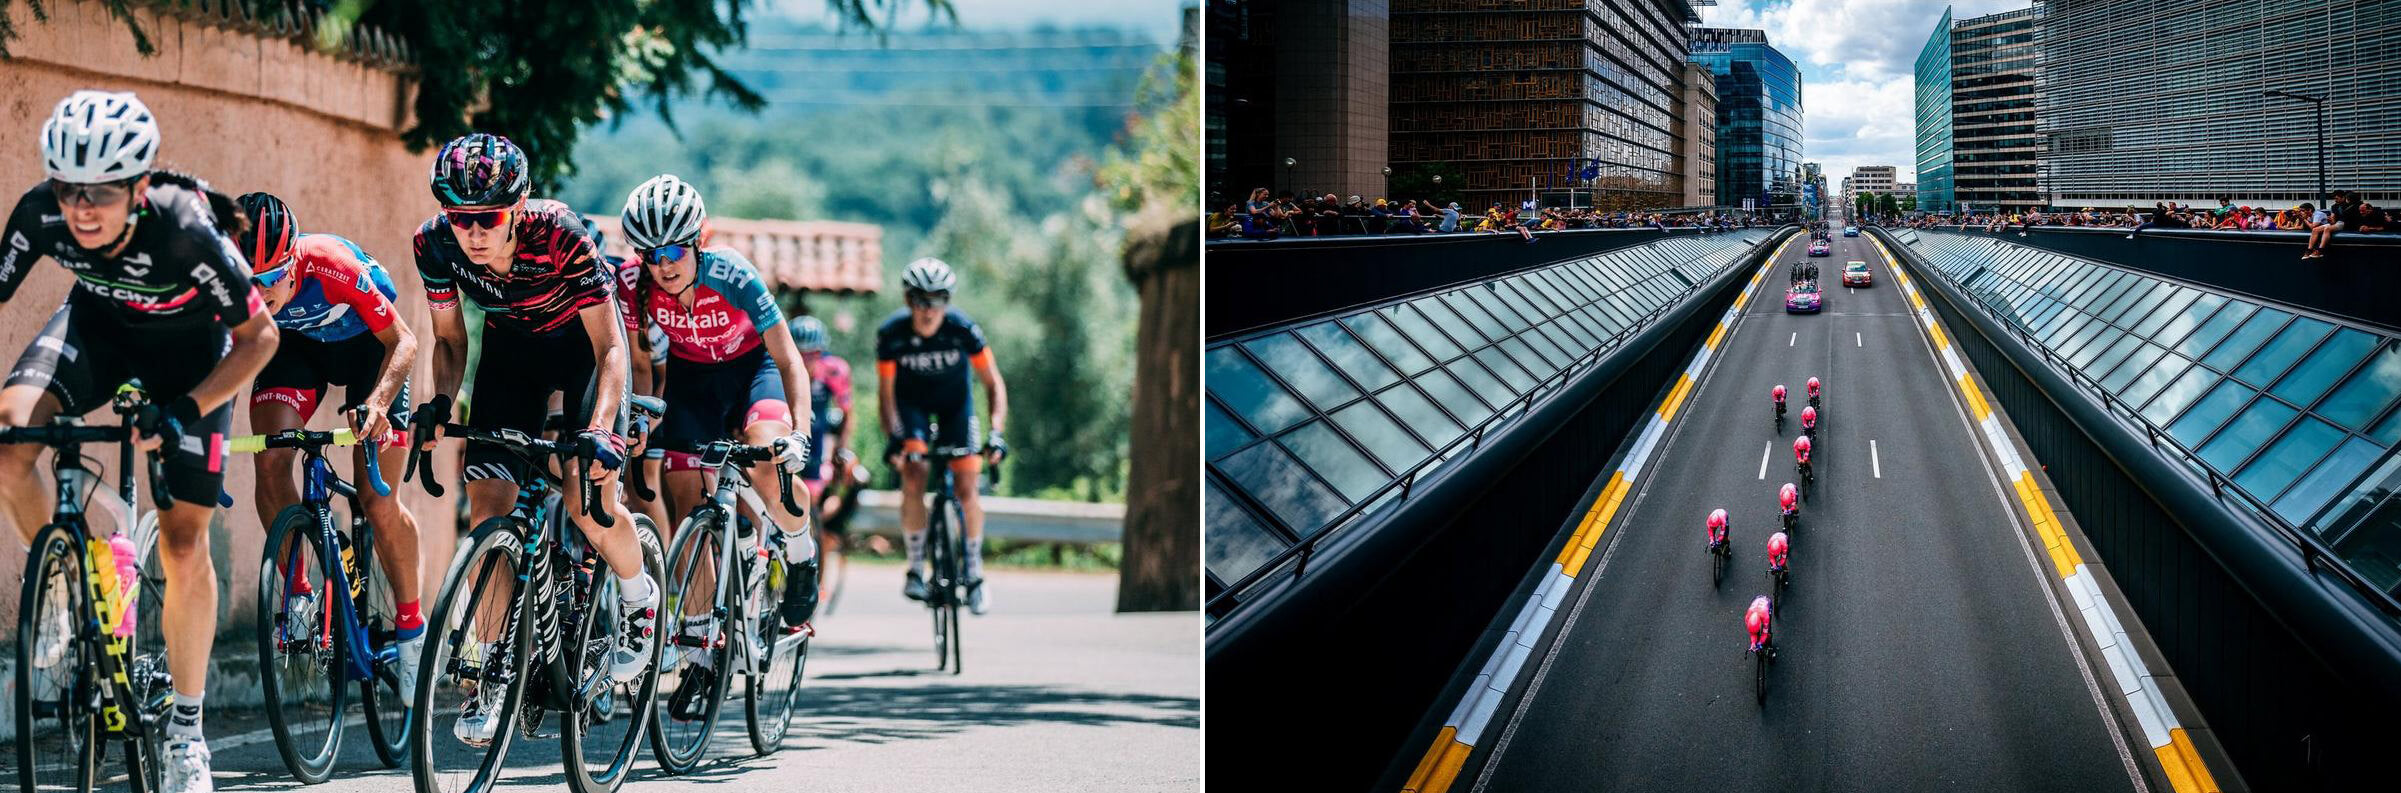 Rapha Cycling Clothing -Contender Bicycles